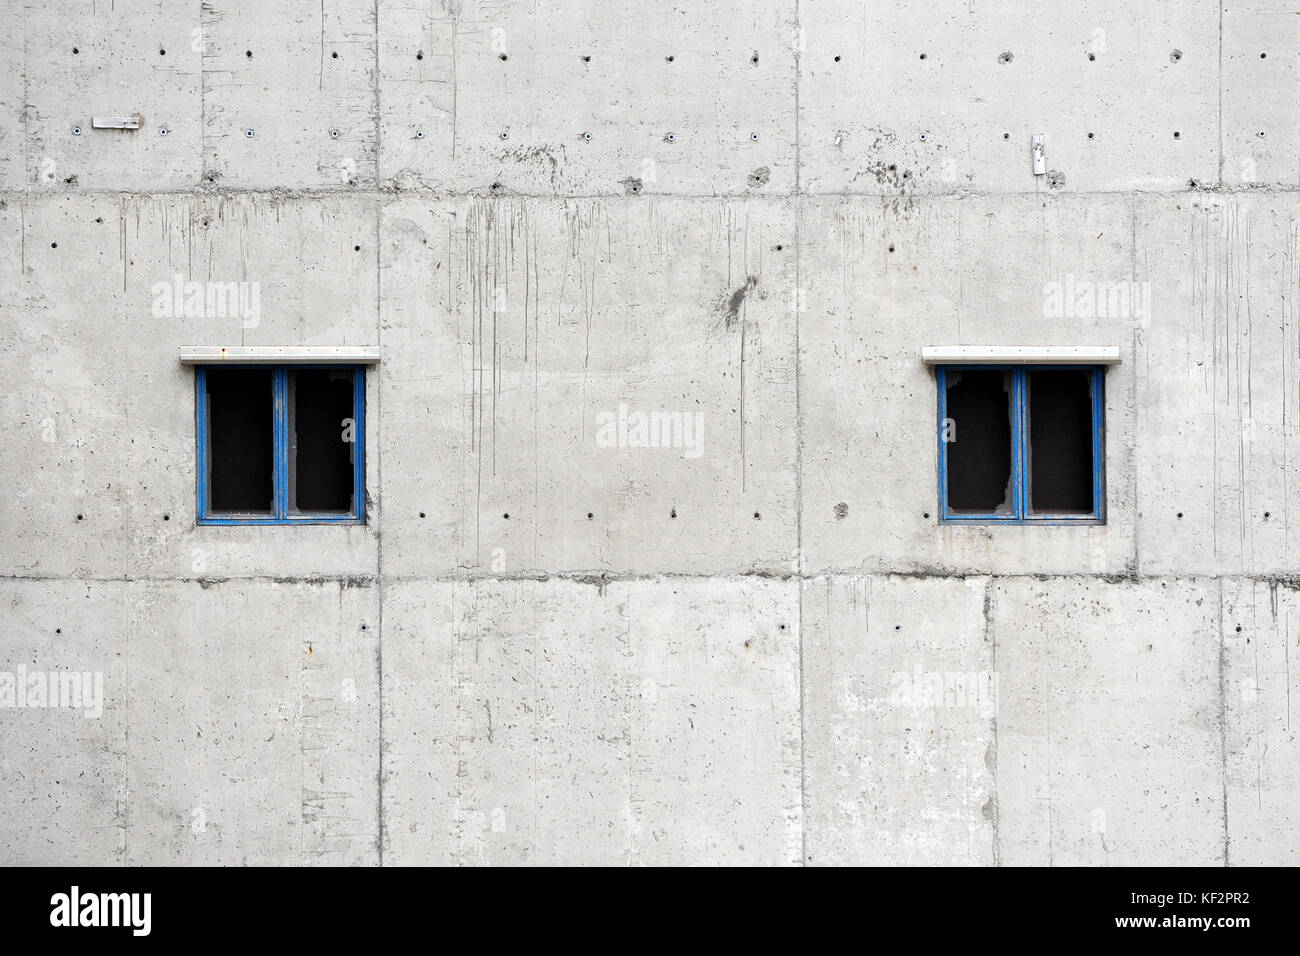 Blue Window Frames Stock Photos & Blue Window Frames Stock Images ...